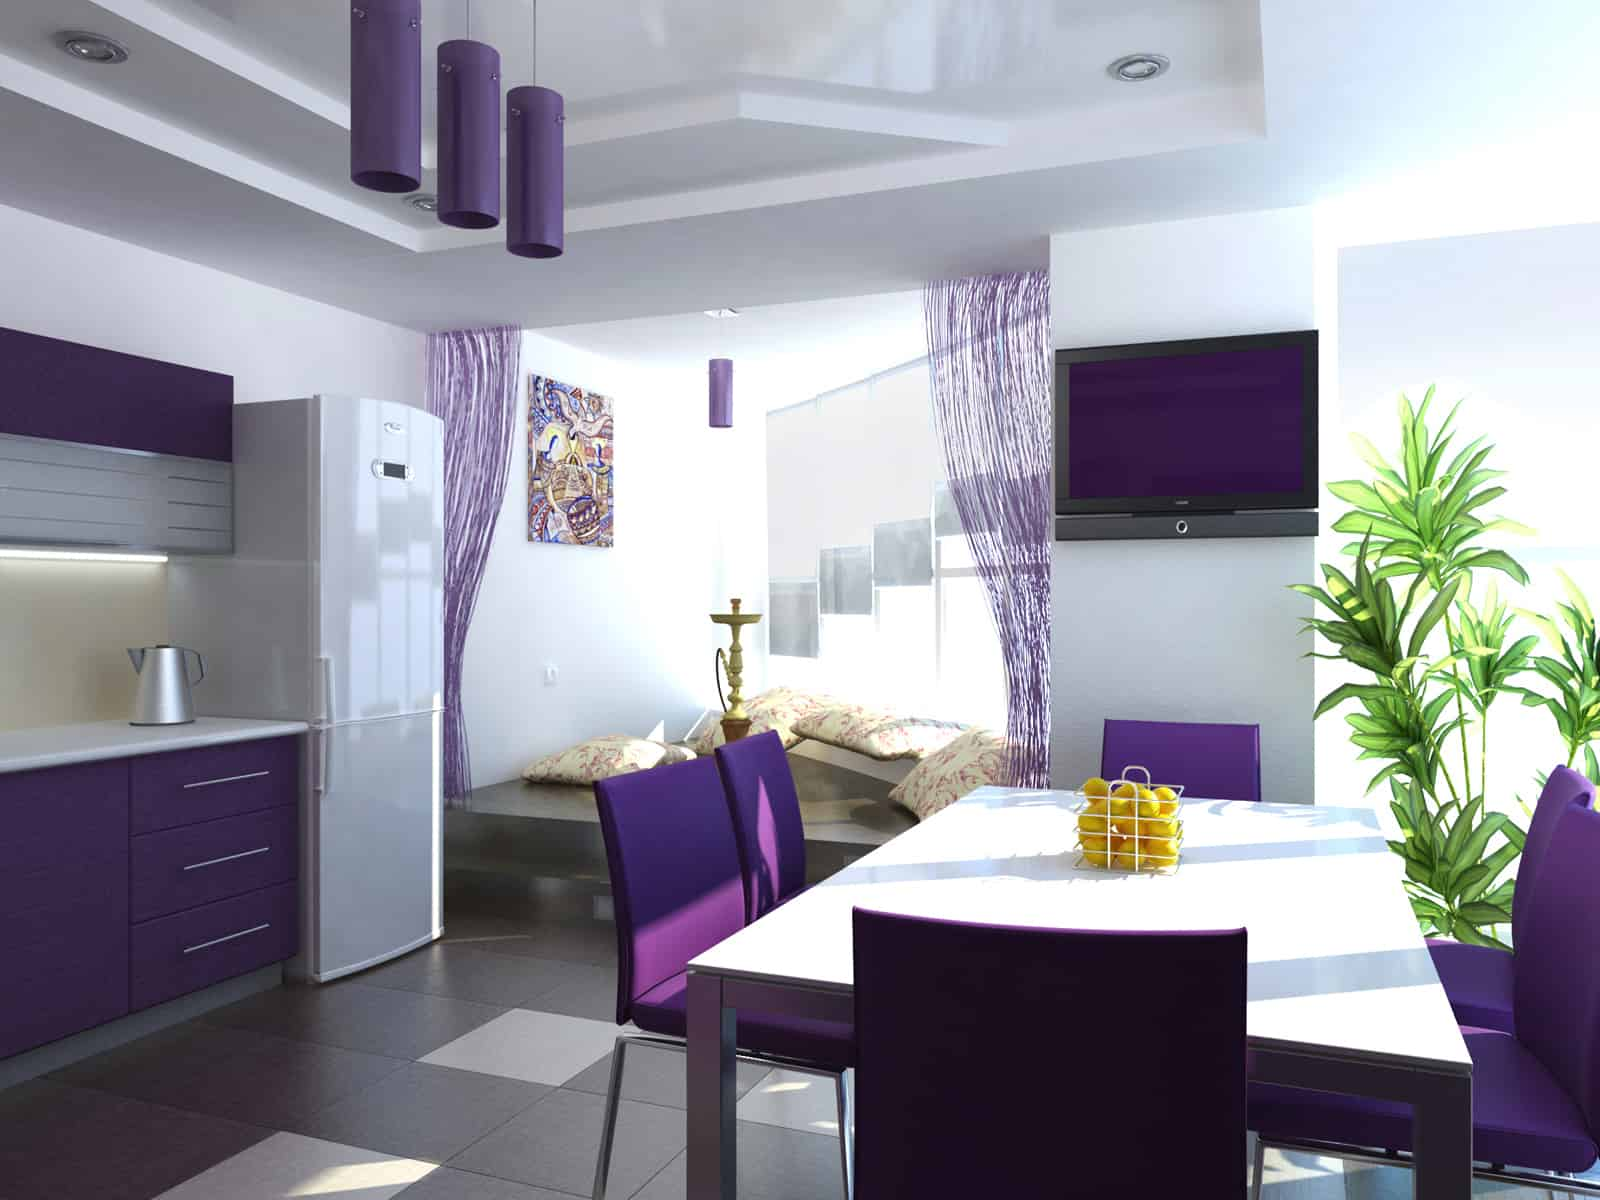 Interior design trends 2017 purple kitchen for Interior design ideas for kitchen